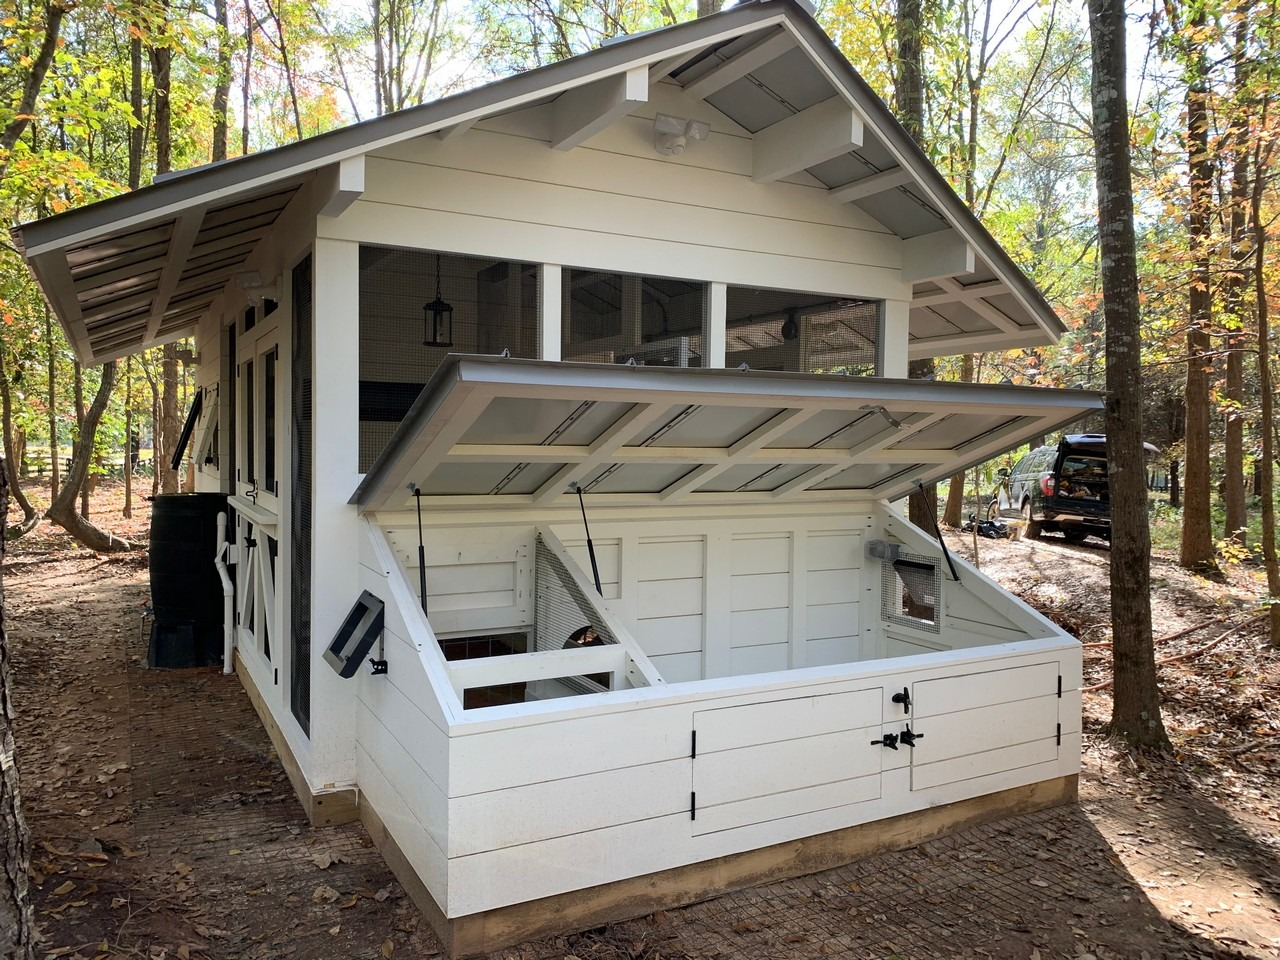 Modern farmhouse chicken and duck coop has a duck dipper for ducks to get their heads wet